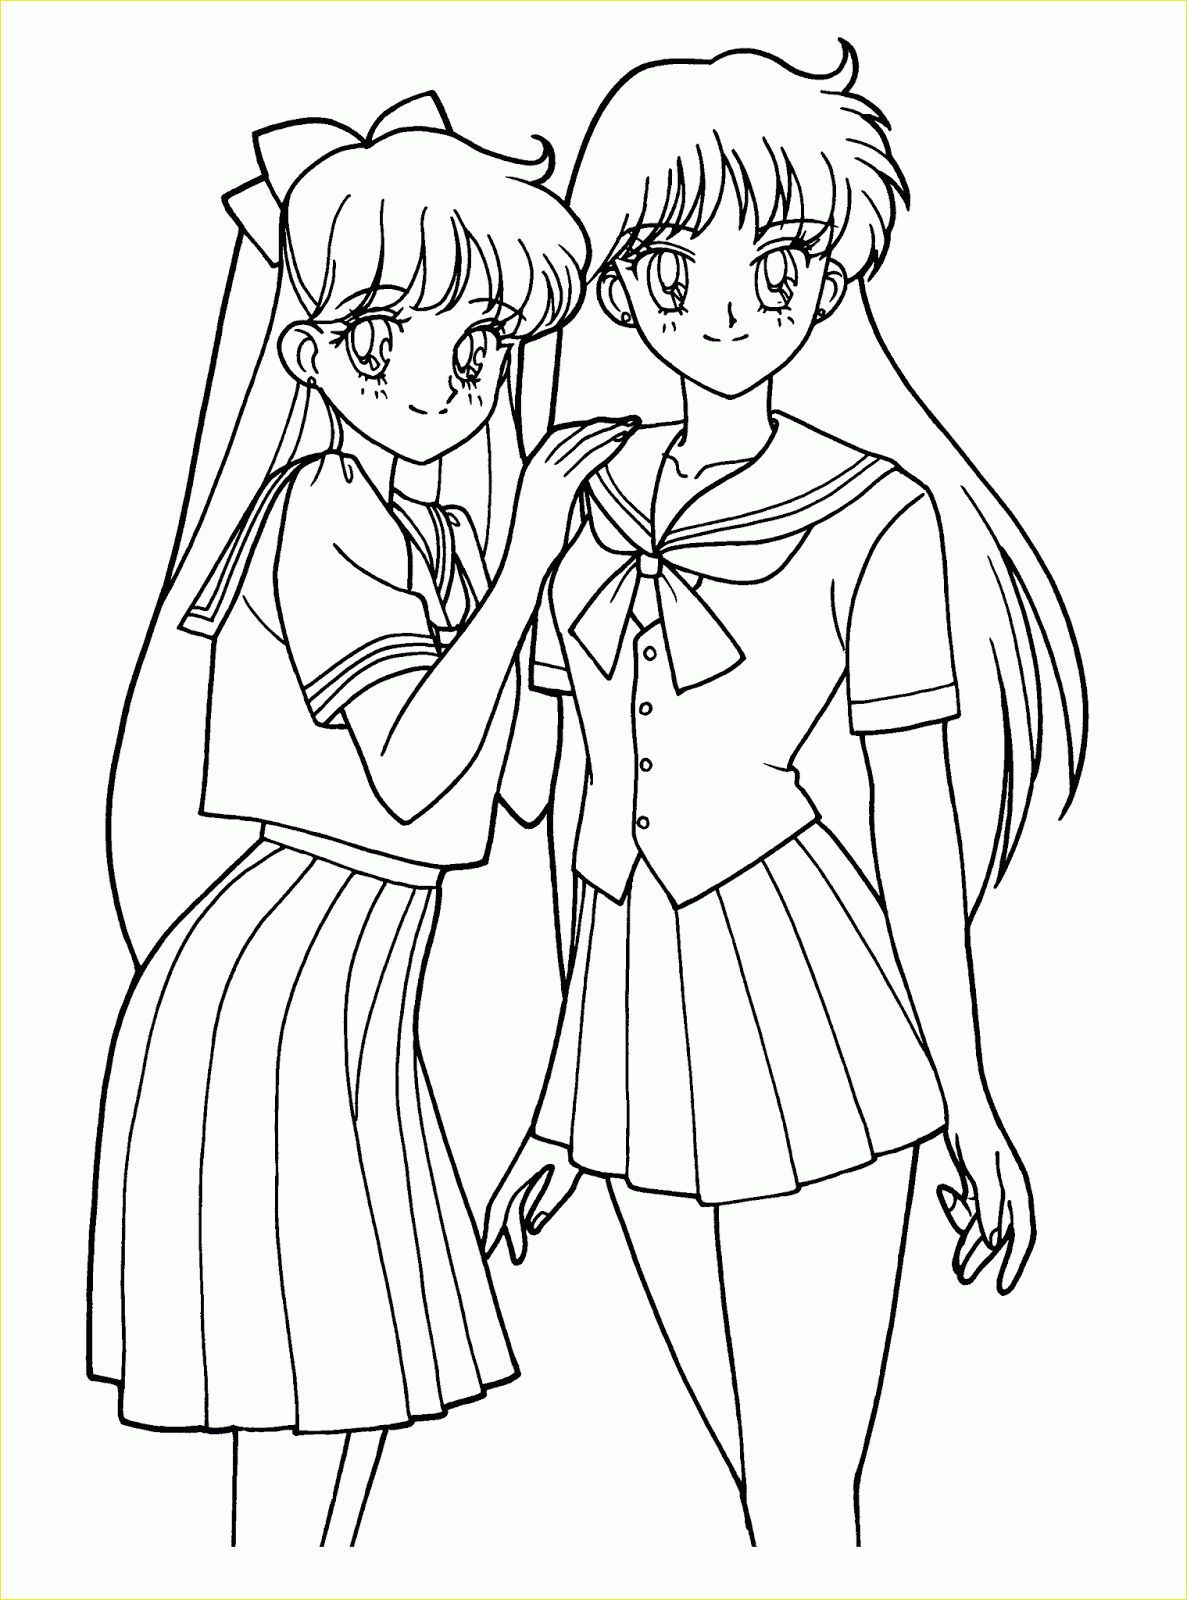 17 Luxury Printable Anime Coloring Pages Photos Sailor Moon Coloring Pages Moon Coloring Pages Coloring Pages For Girls [ 1600 x 1187 Pixel ]